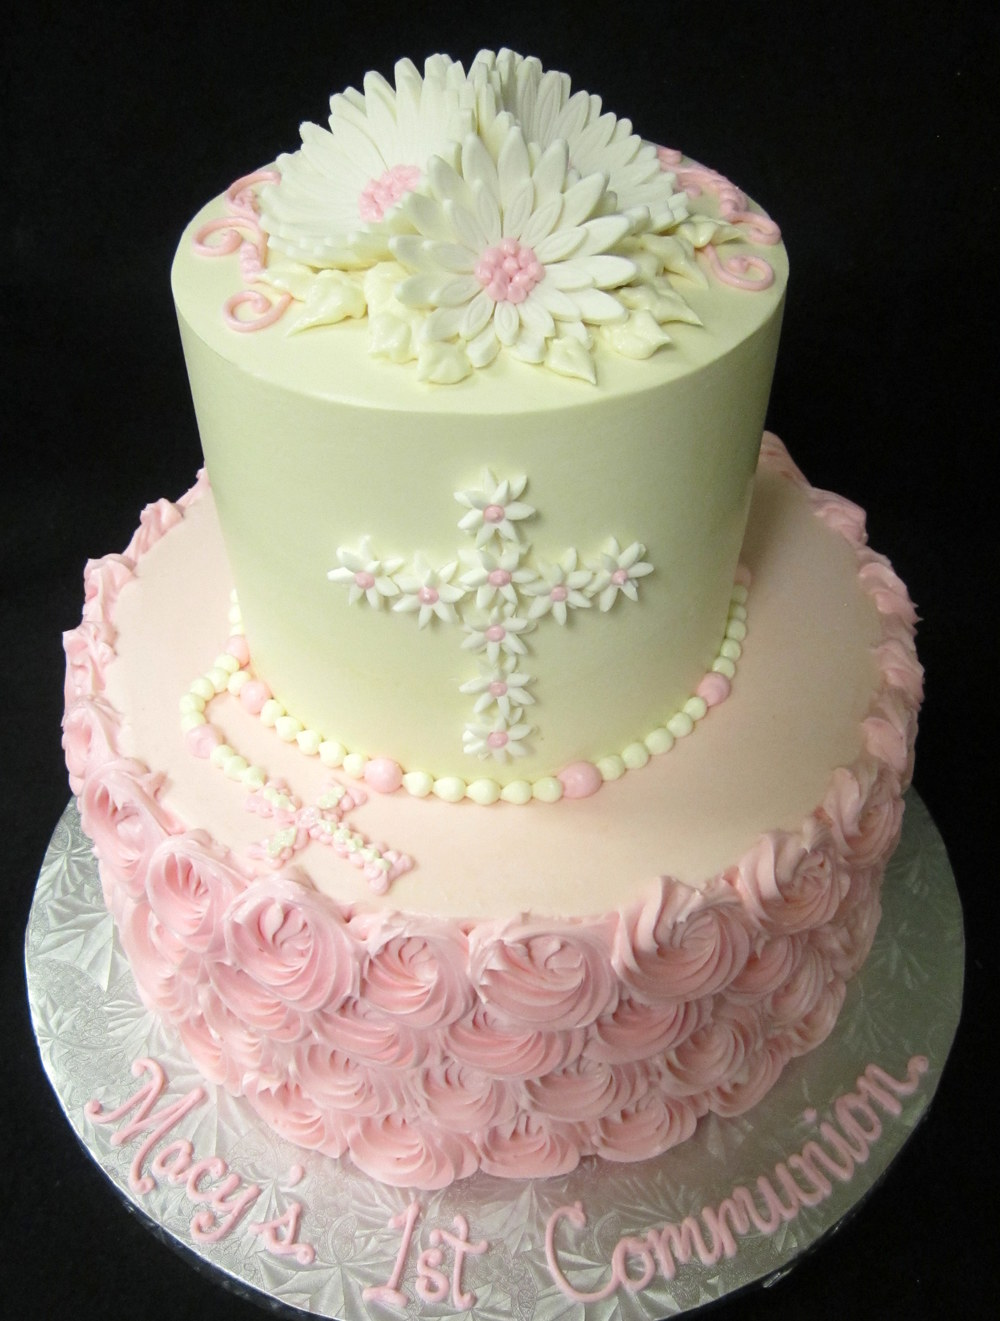 daisy cross communion rosette cake.JPG